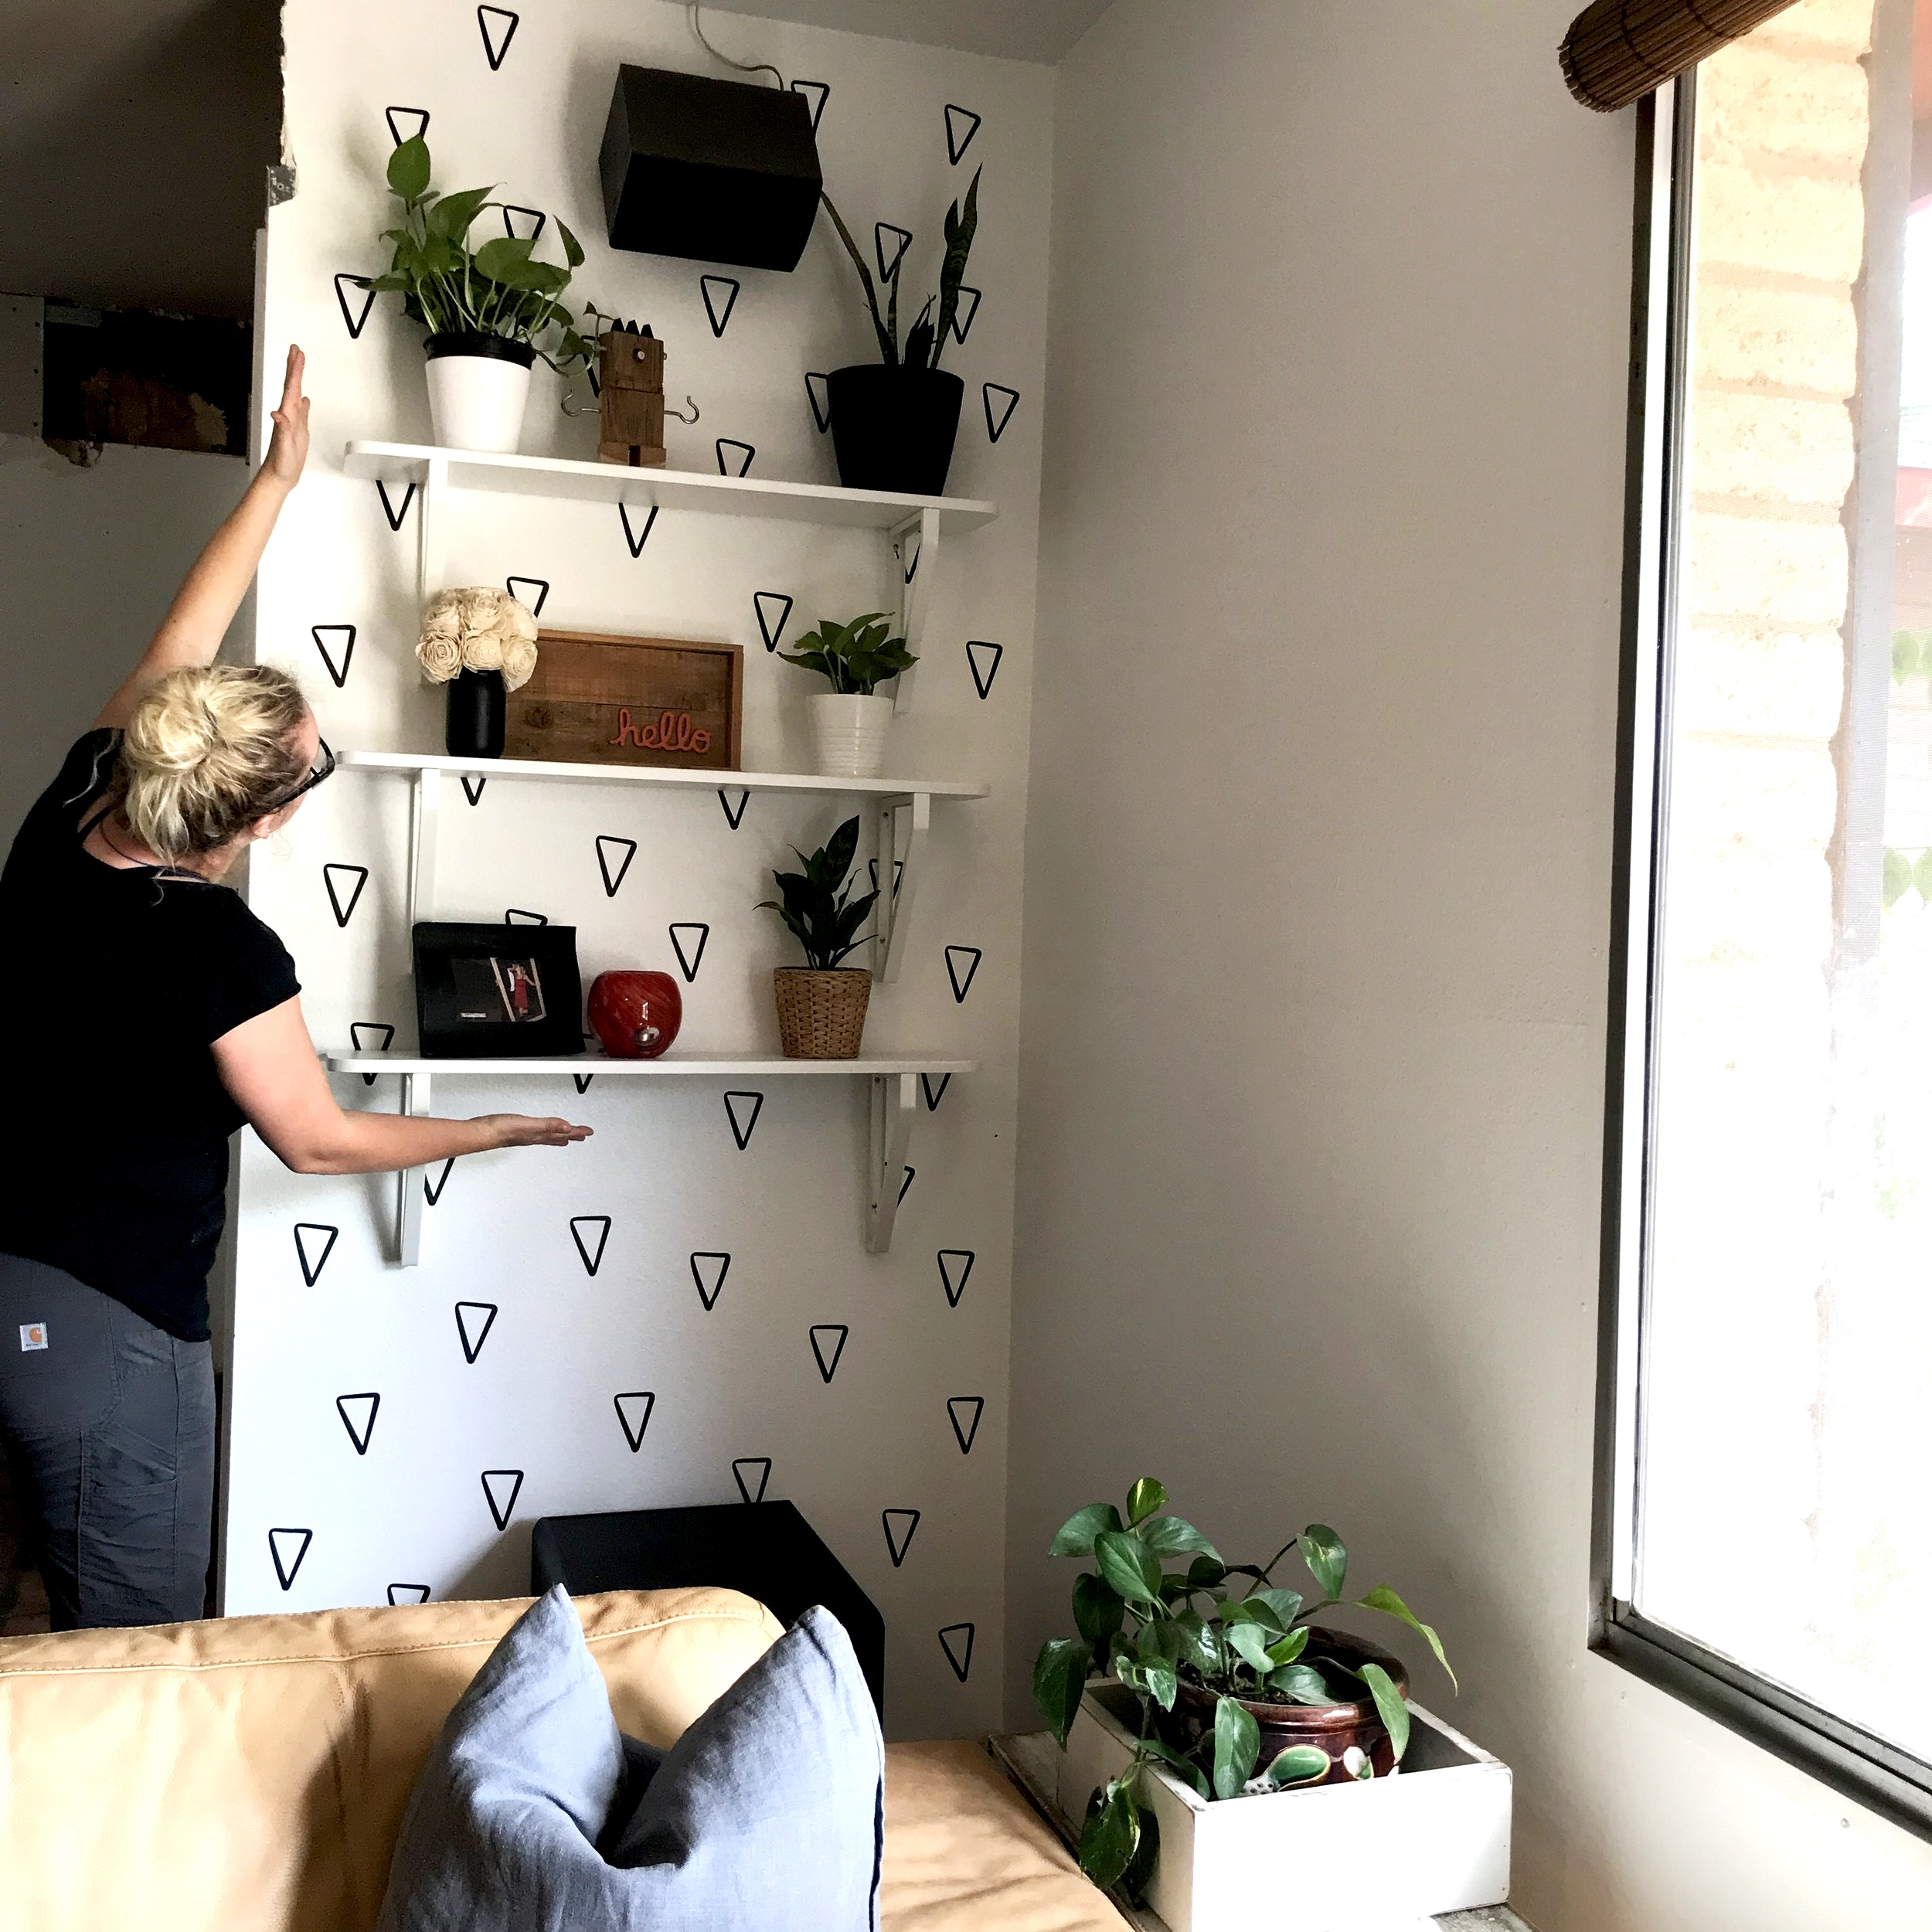 How+to+Decorate+An+Odd+Corner+Space_4790.jpg